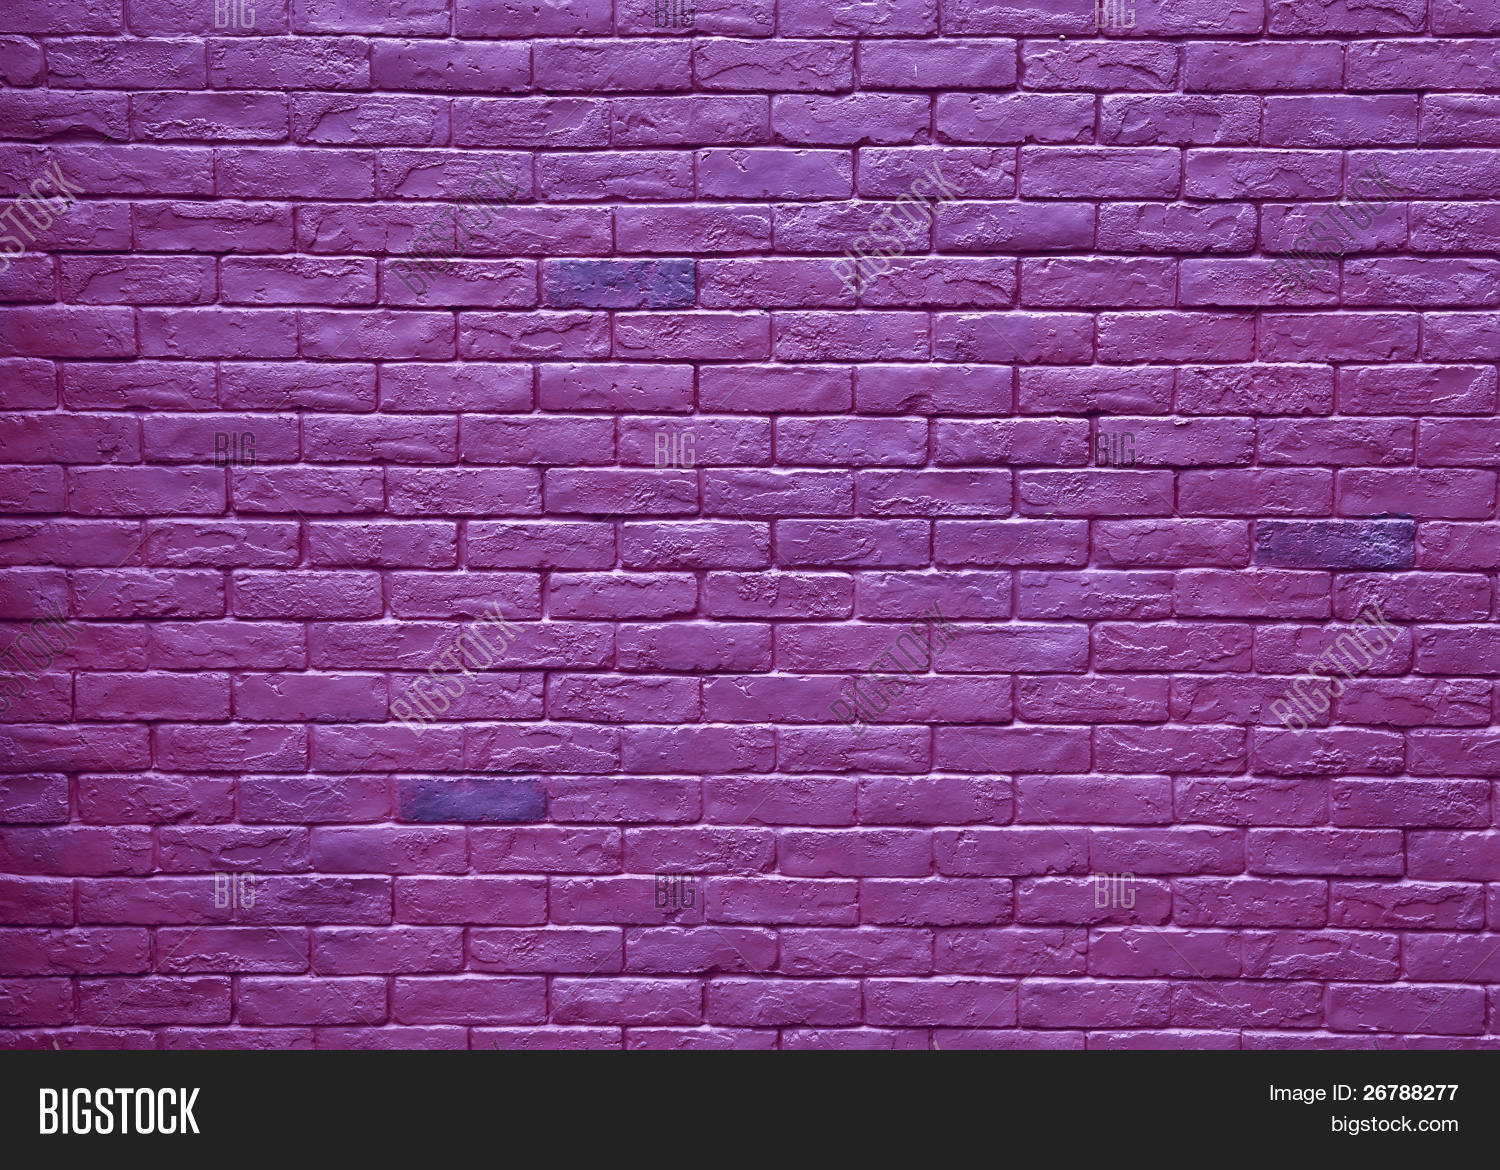 Abstract purple rough grunge brick image photo bigstock for Purple brick wallpaper